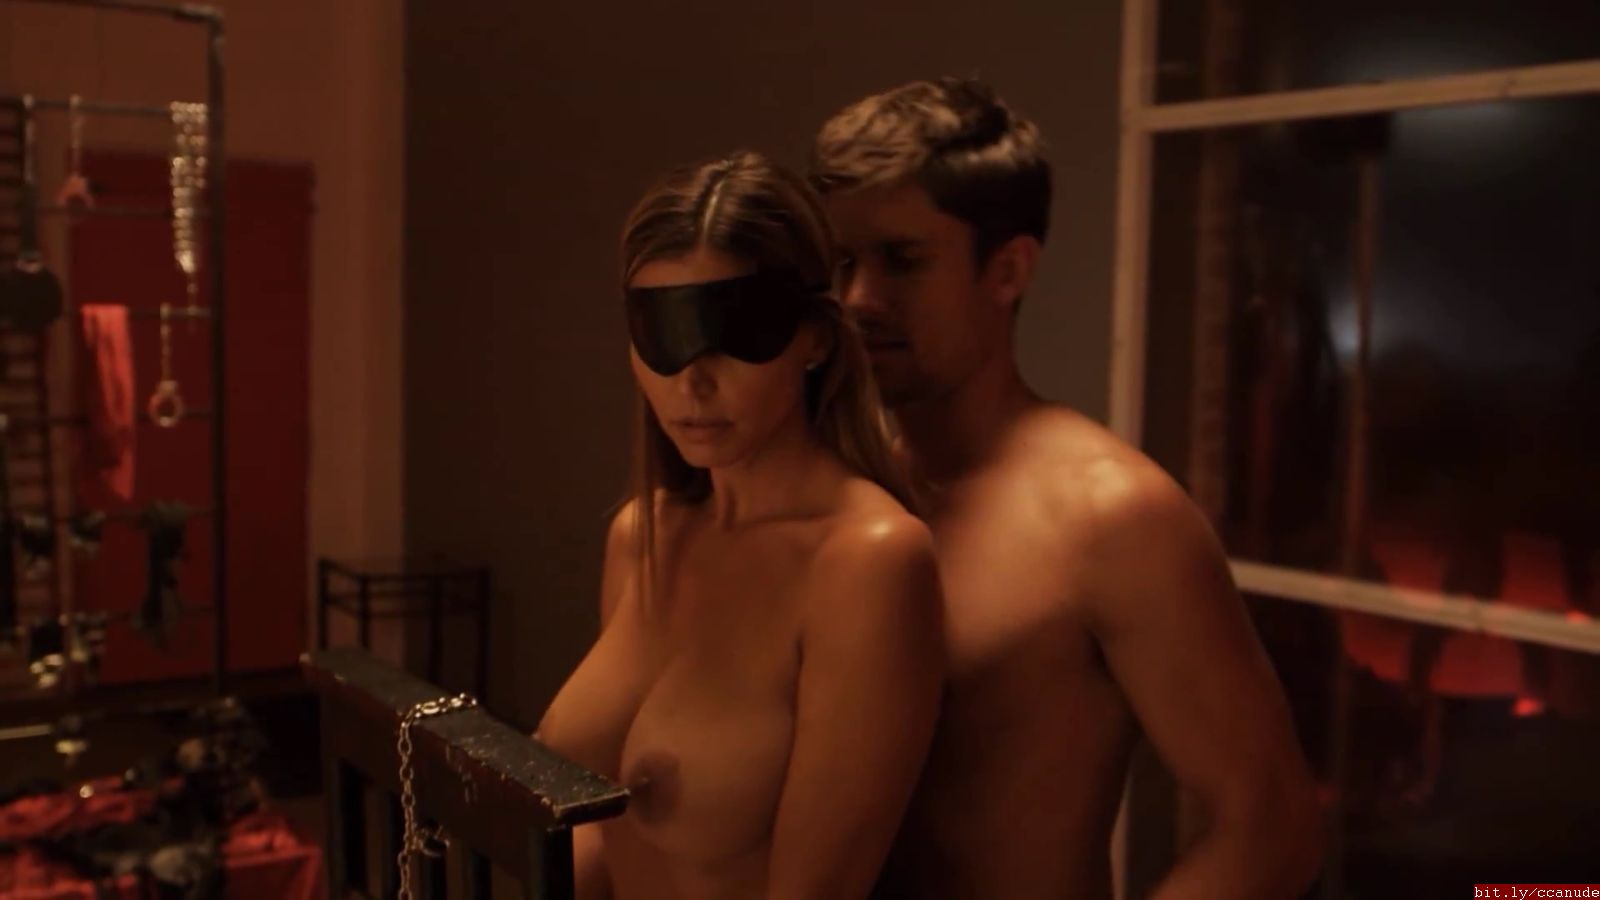 Remarkable, very Charisma carpenter nude photos would like